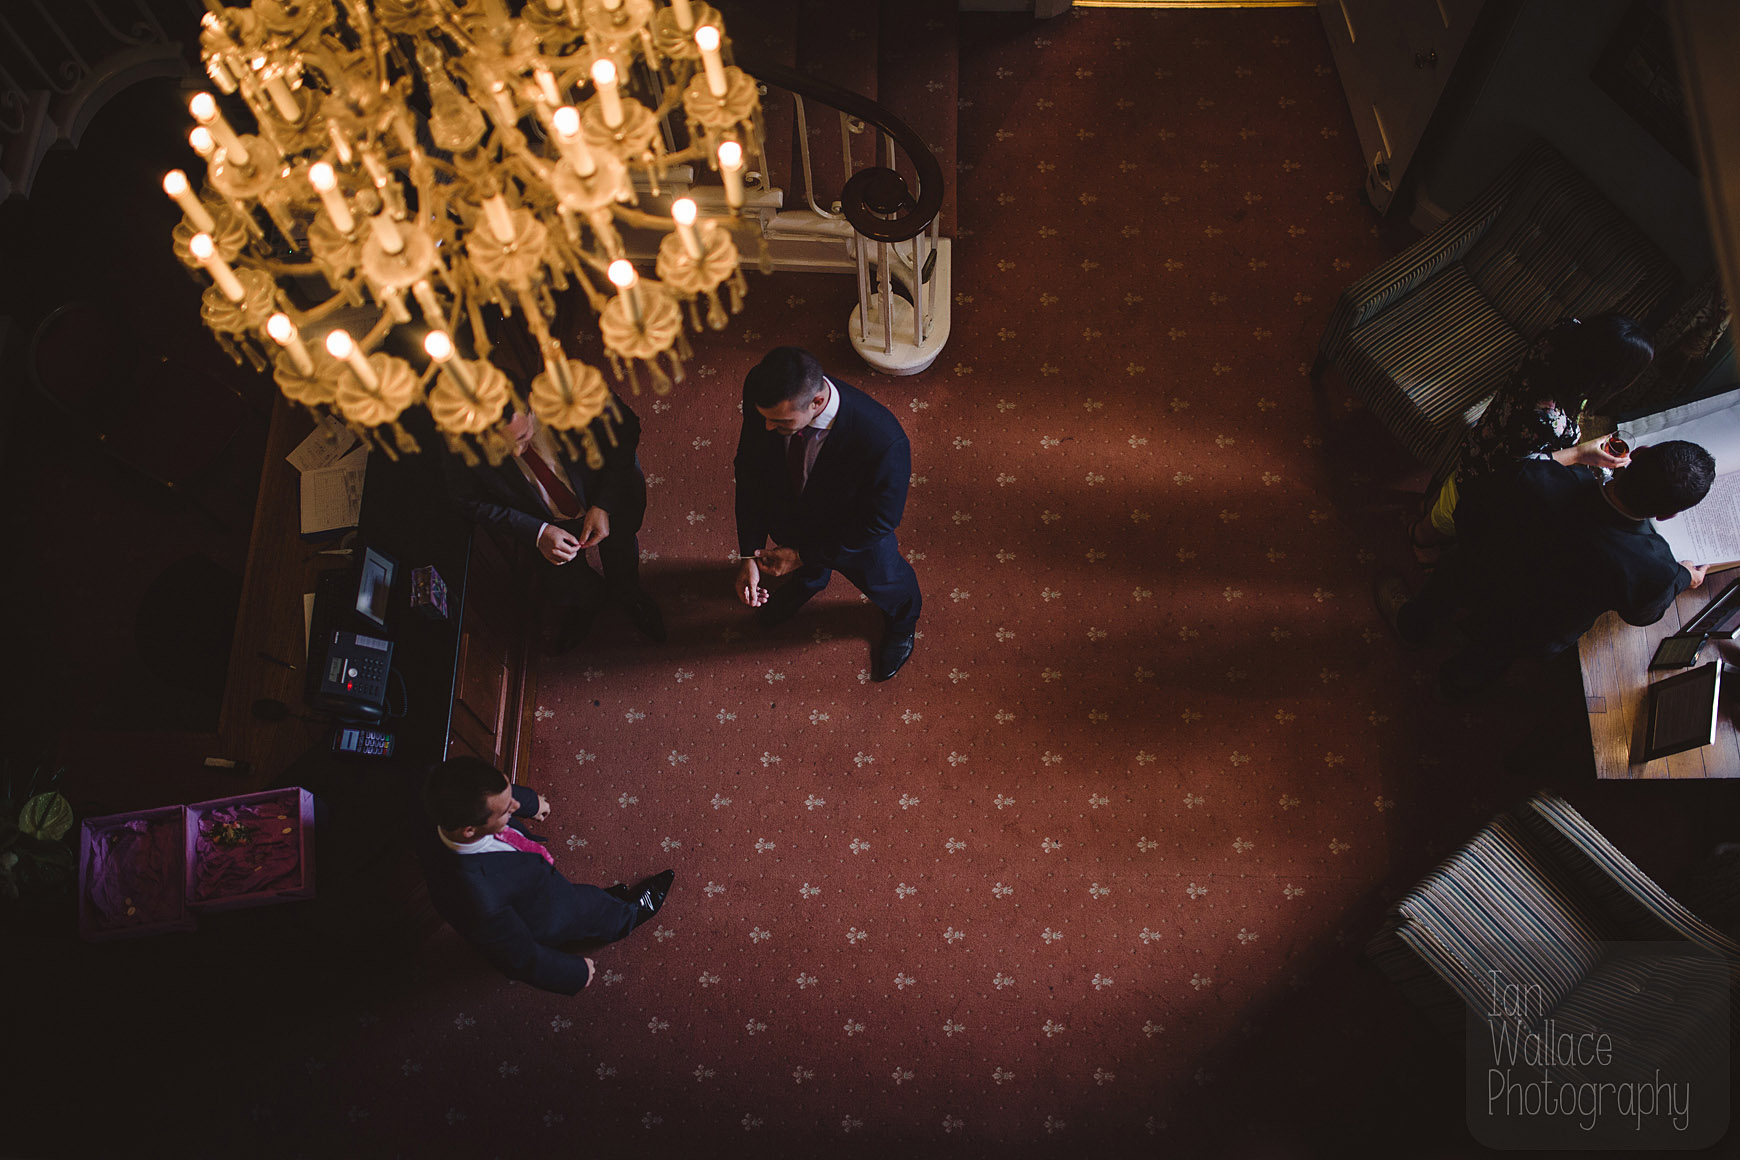 Abstract shot of men waiting around before a ceremony